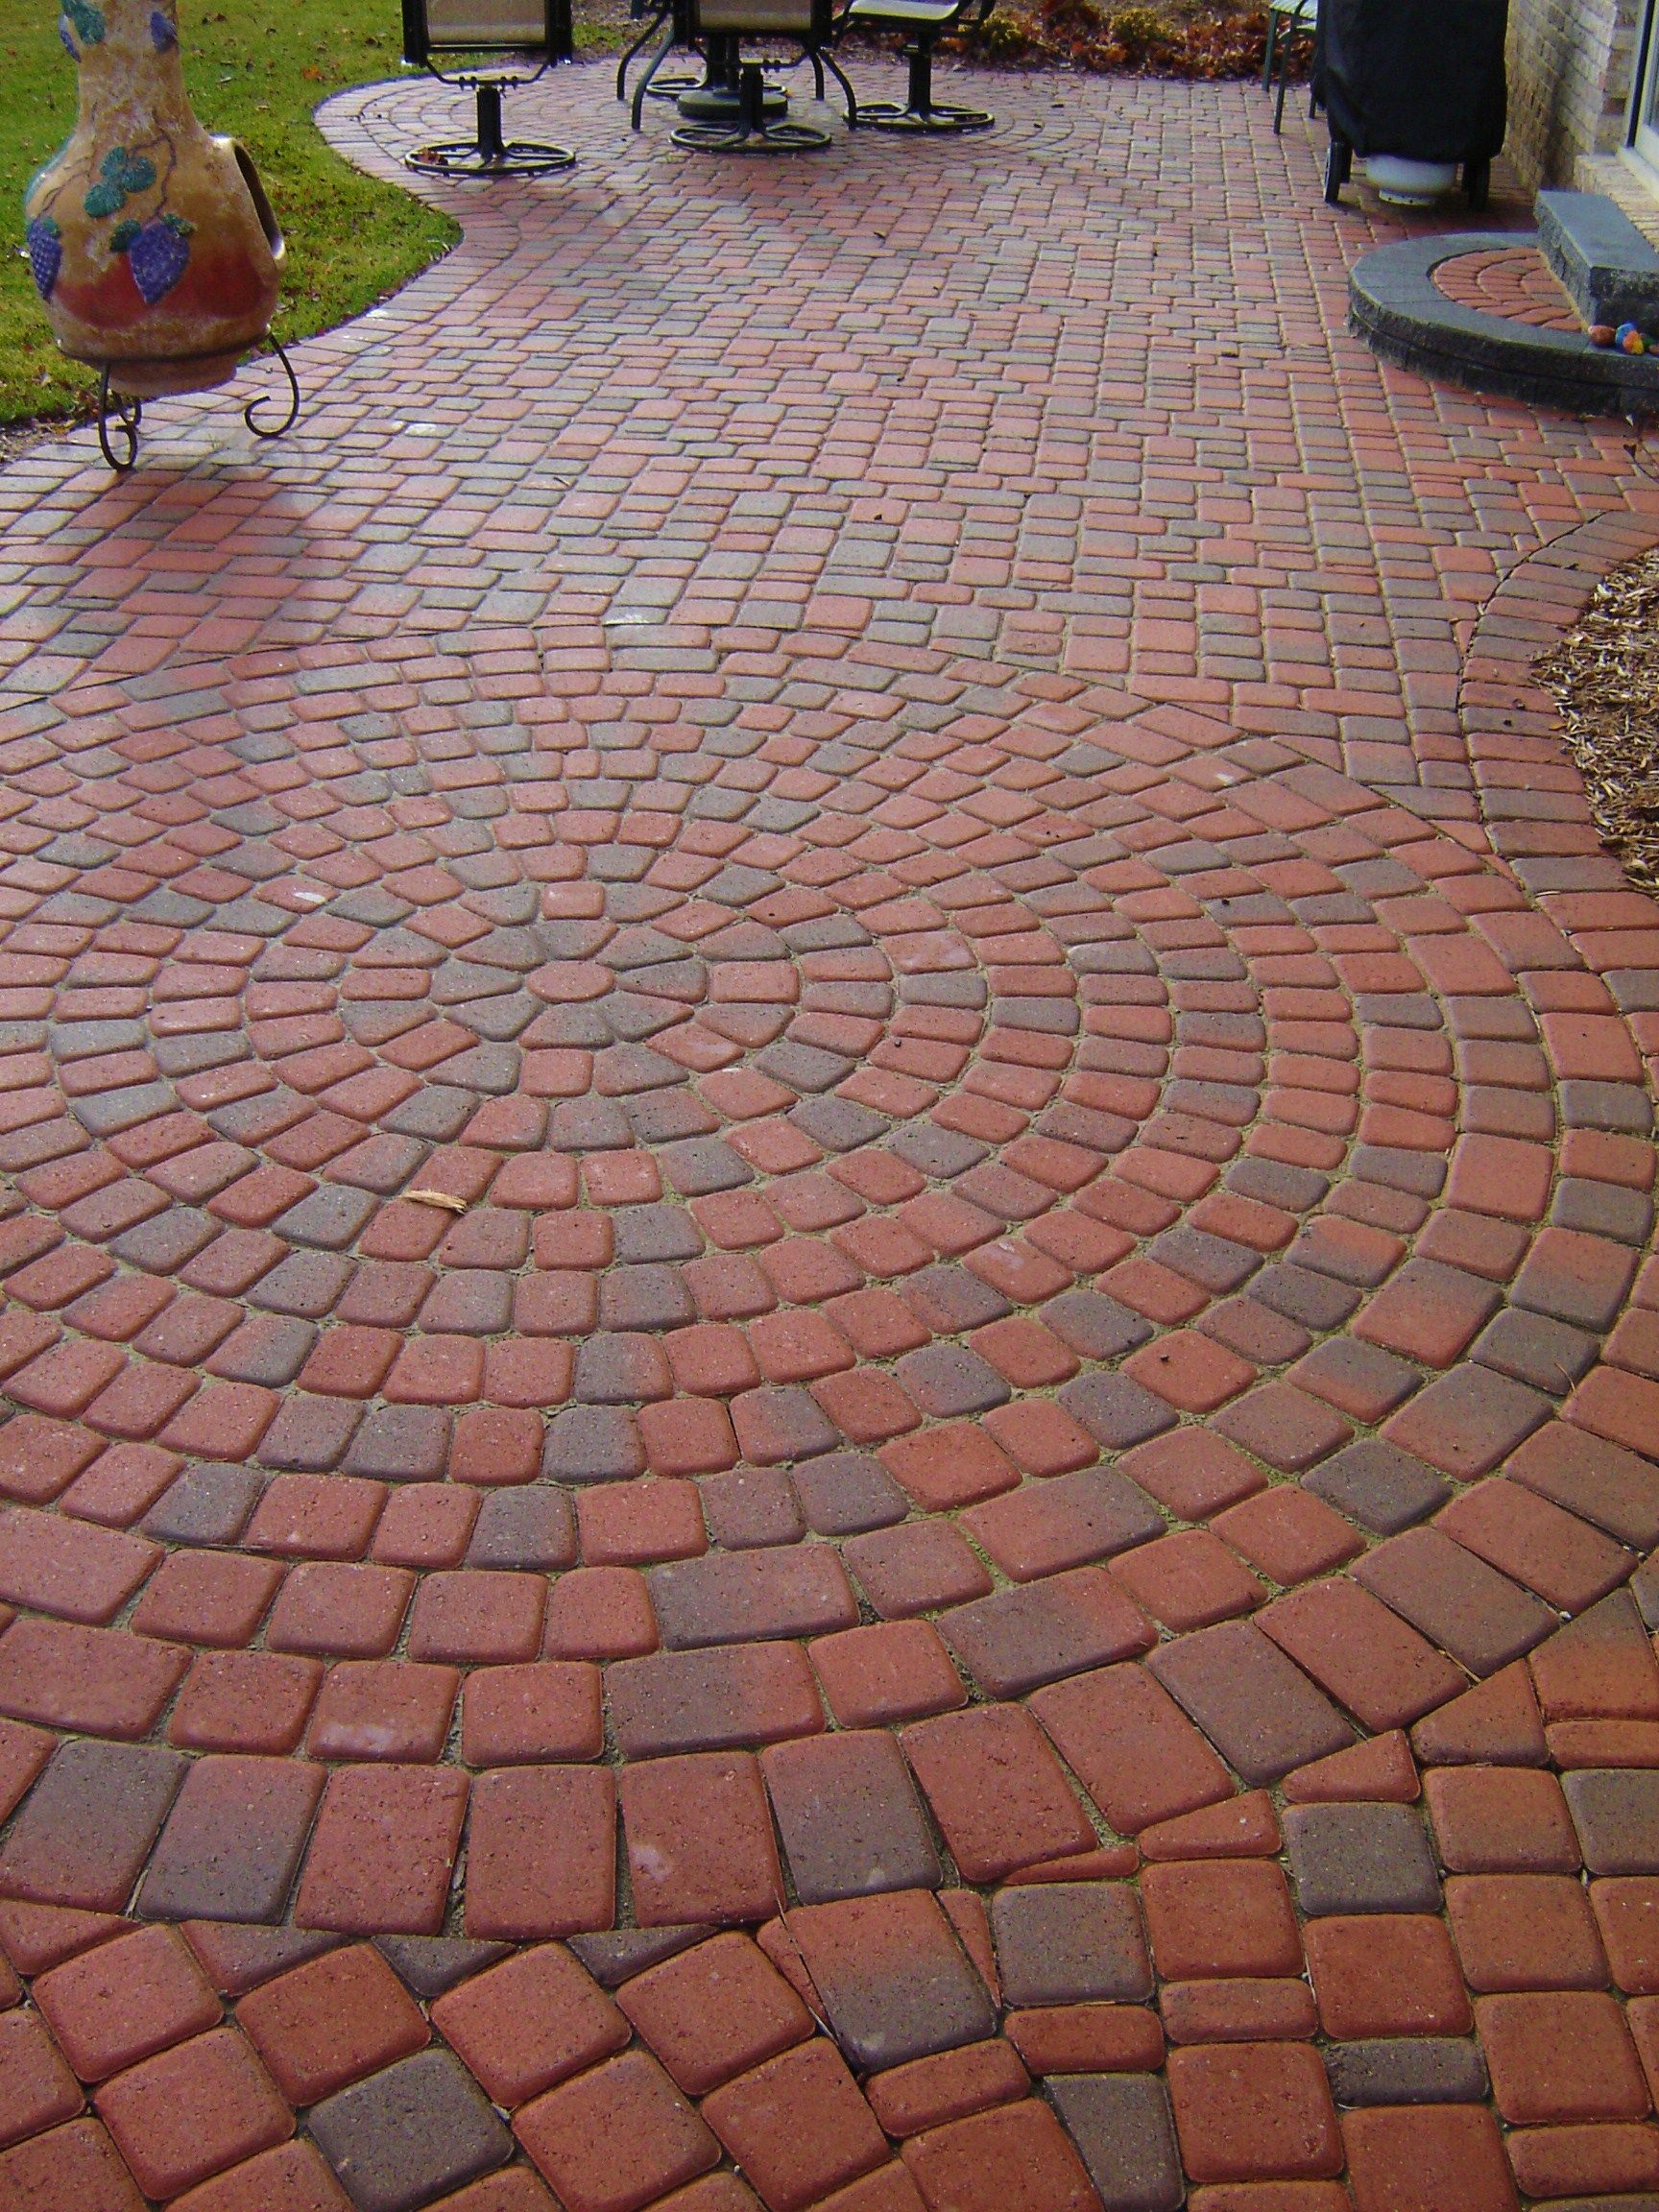 Old Greenwich Cobble brick paver circle patio and steps in ... on Red Paver Patio Ideas id=58375